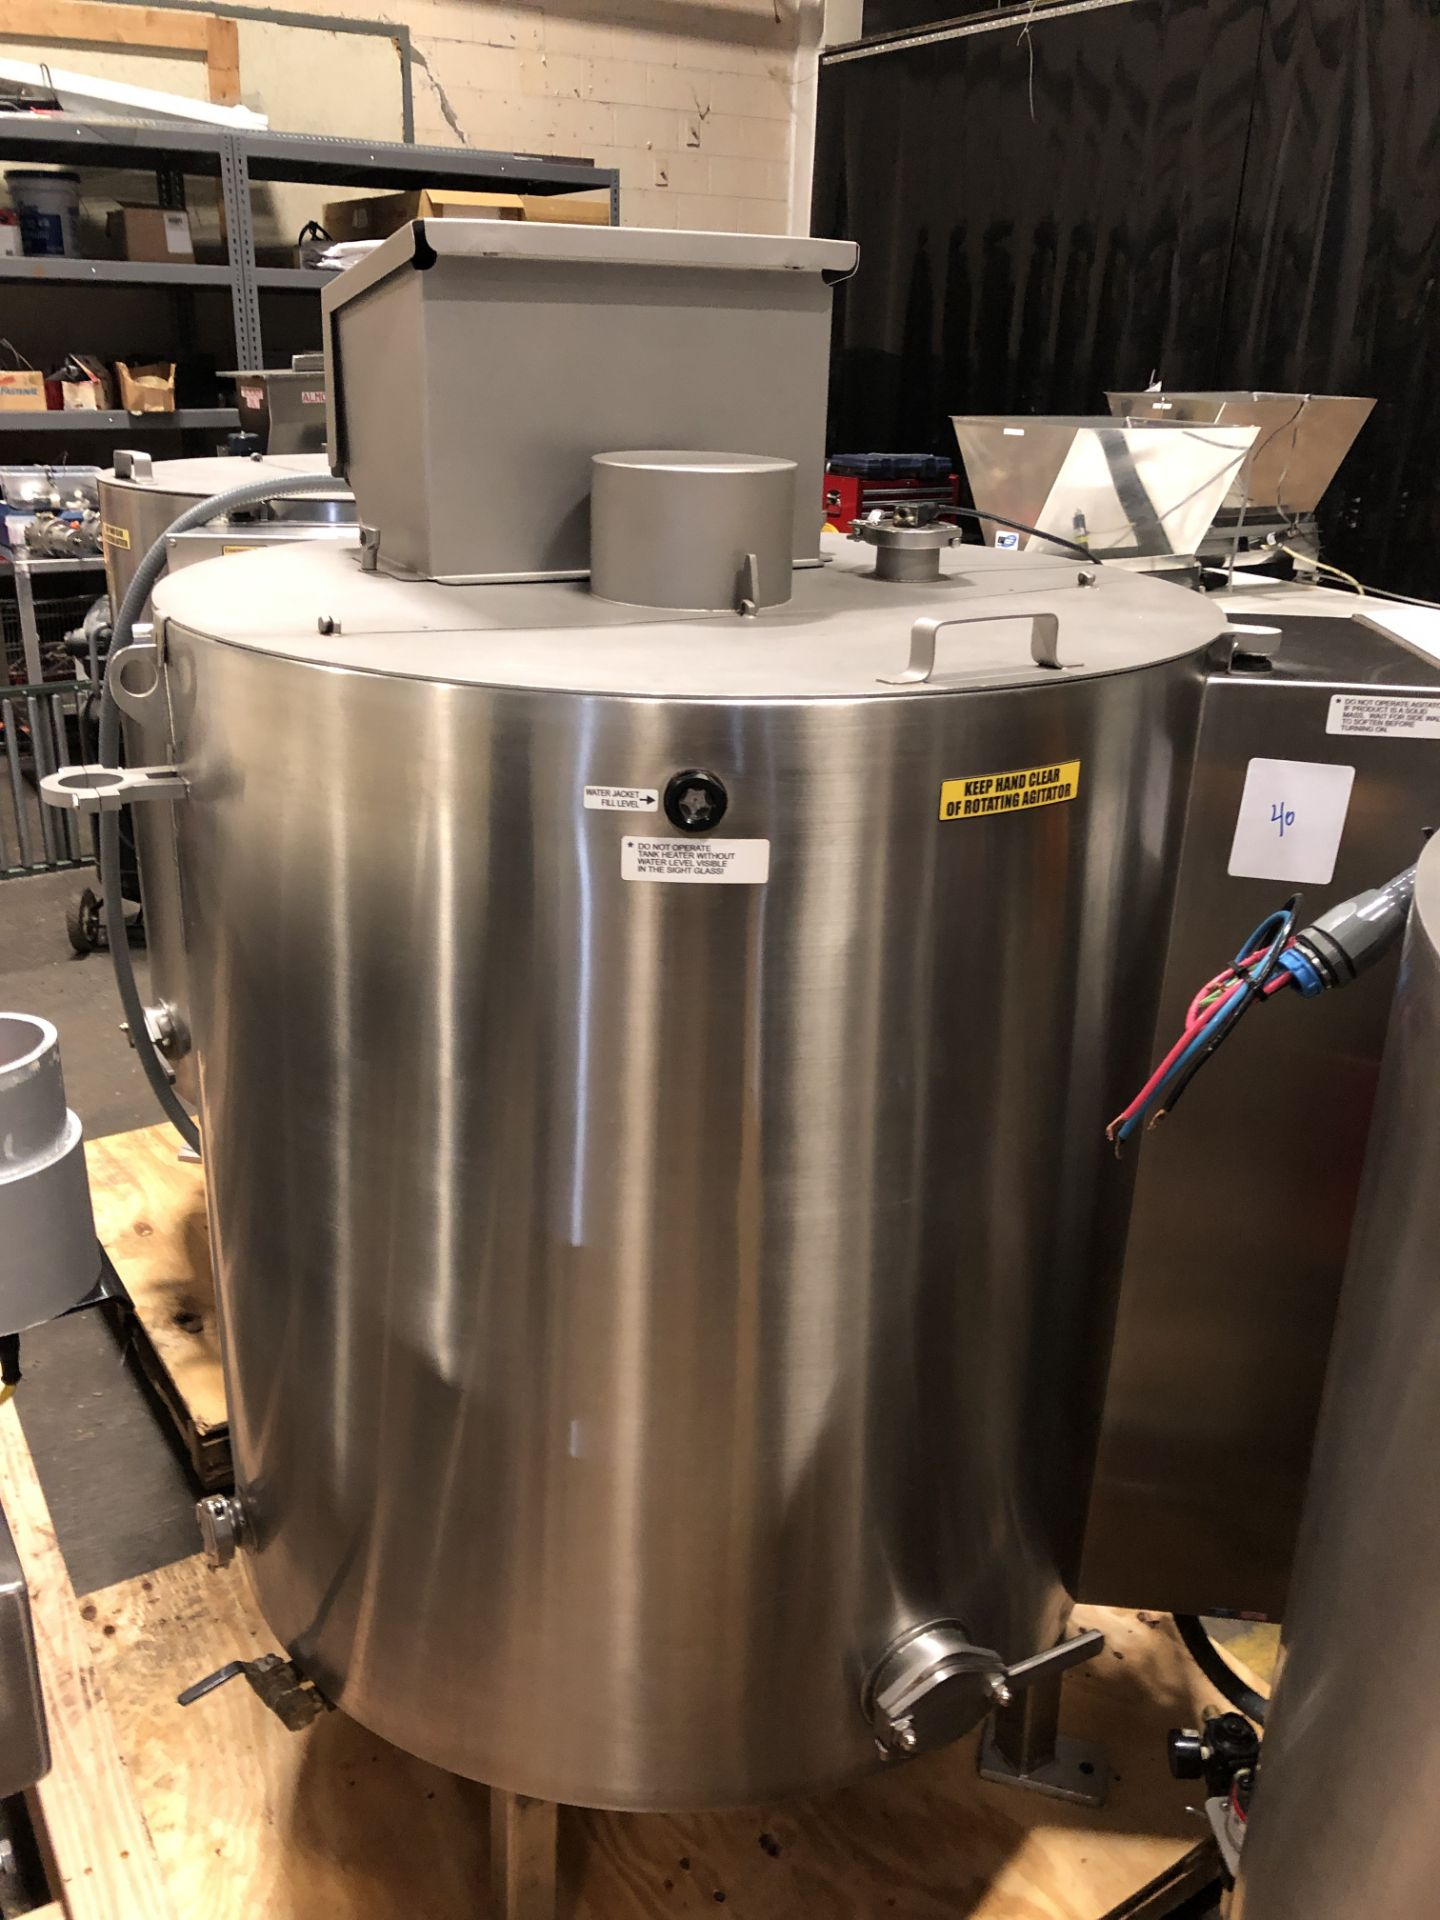 Lot 43 - Savage Stainless Steel 1250-lb Chocolate Melter, model 0974-36, with PLC touchscreen controls,